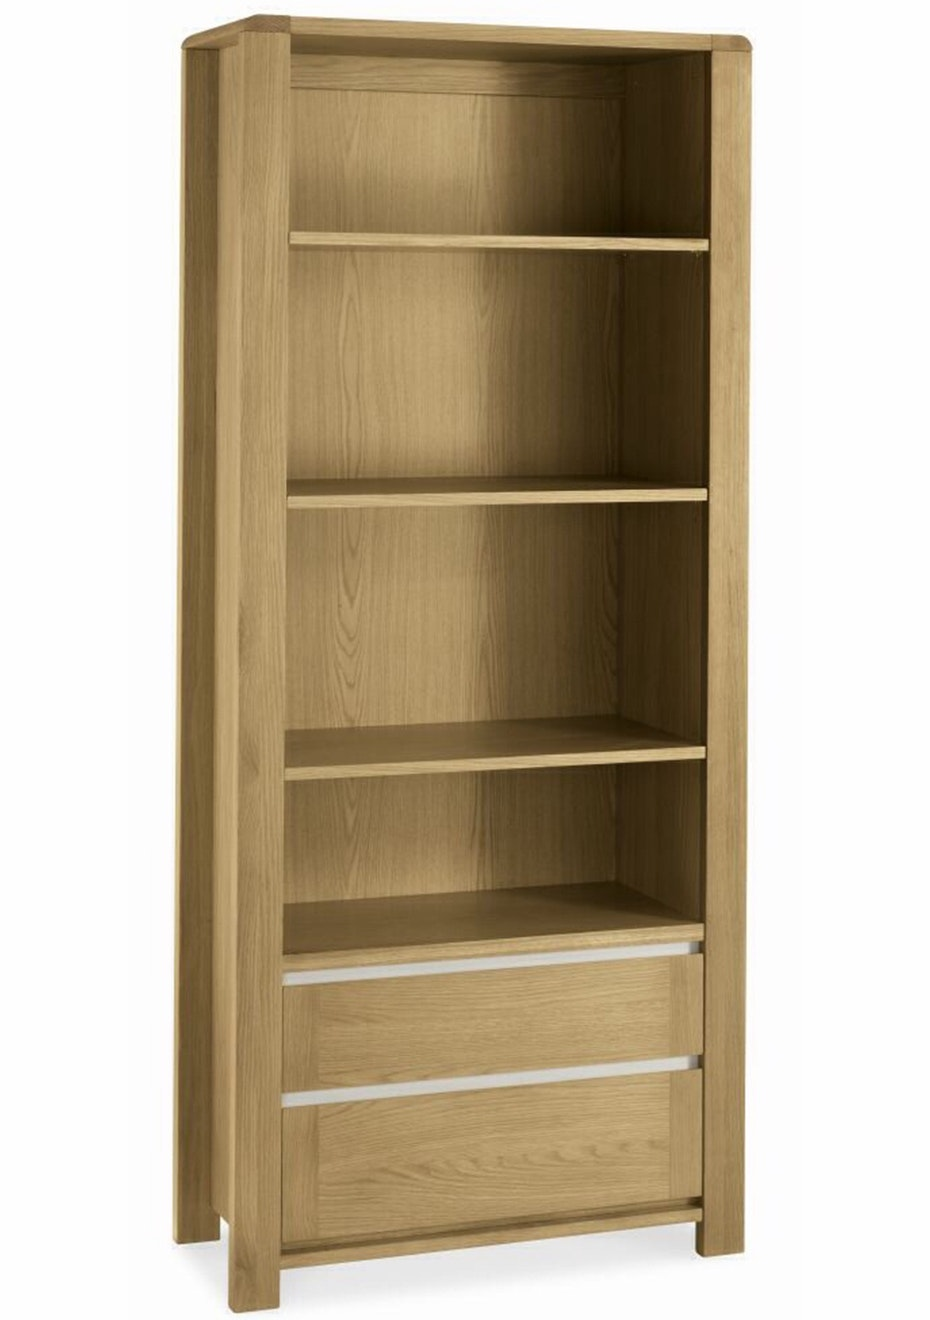 Furniture By Design - Casa Oak Wide Bookcase- Light Oak